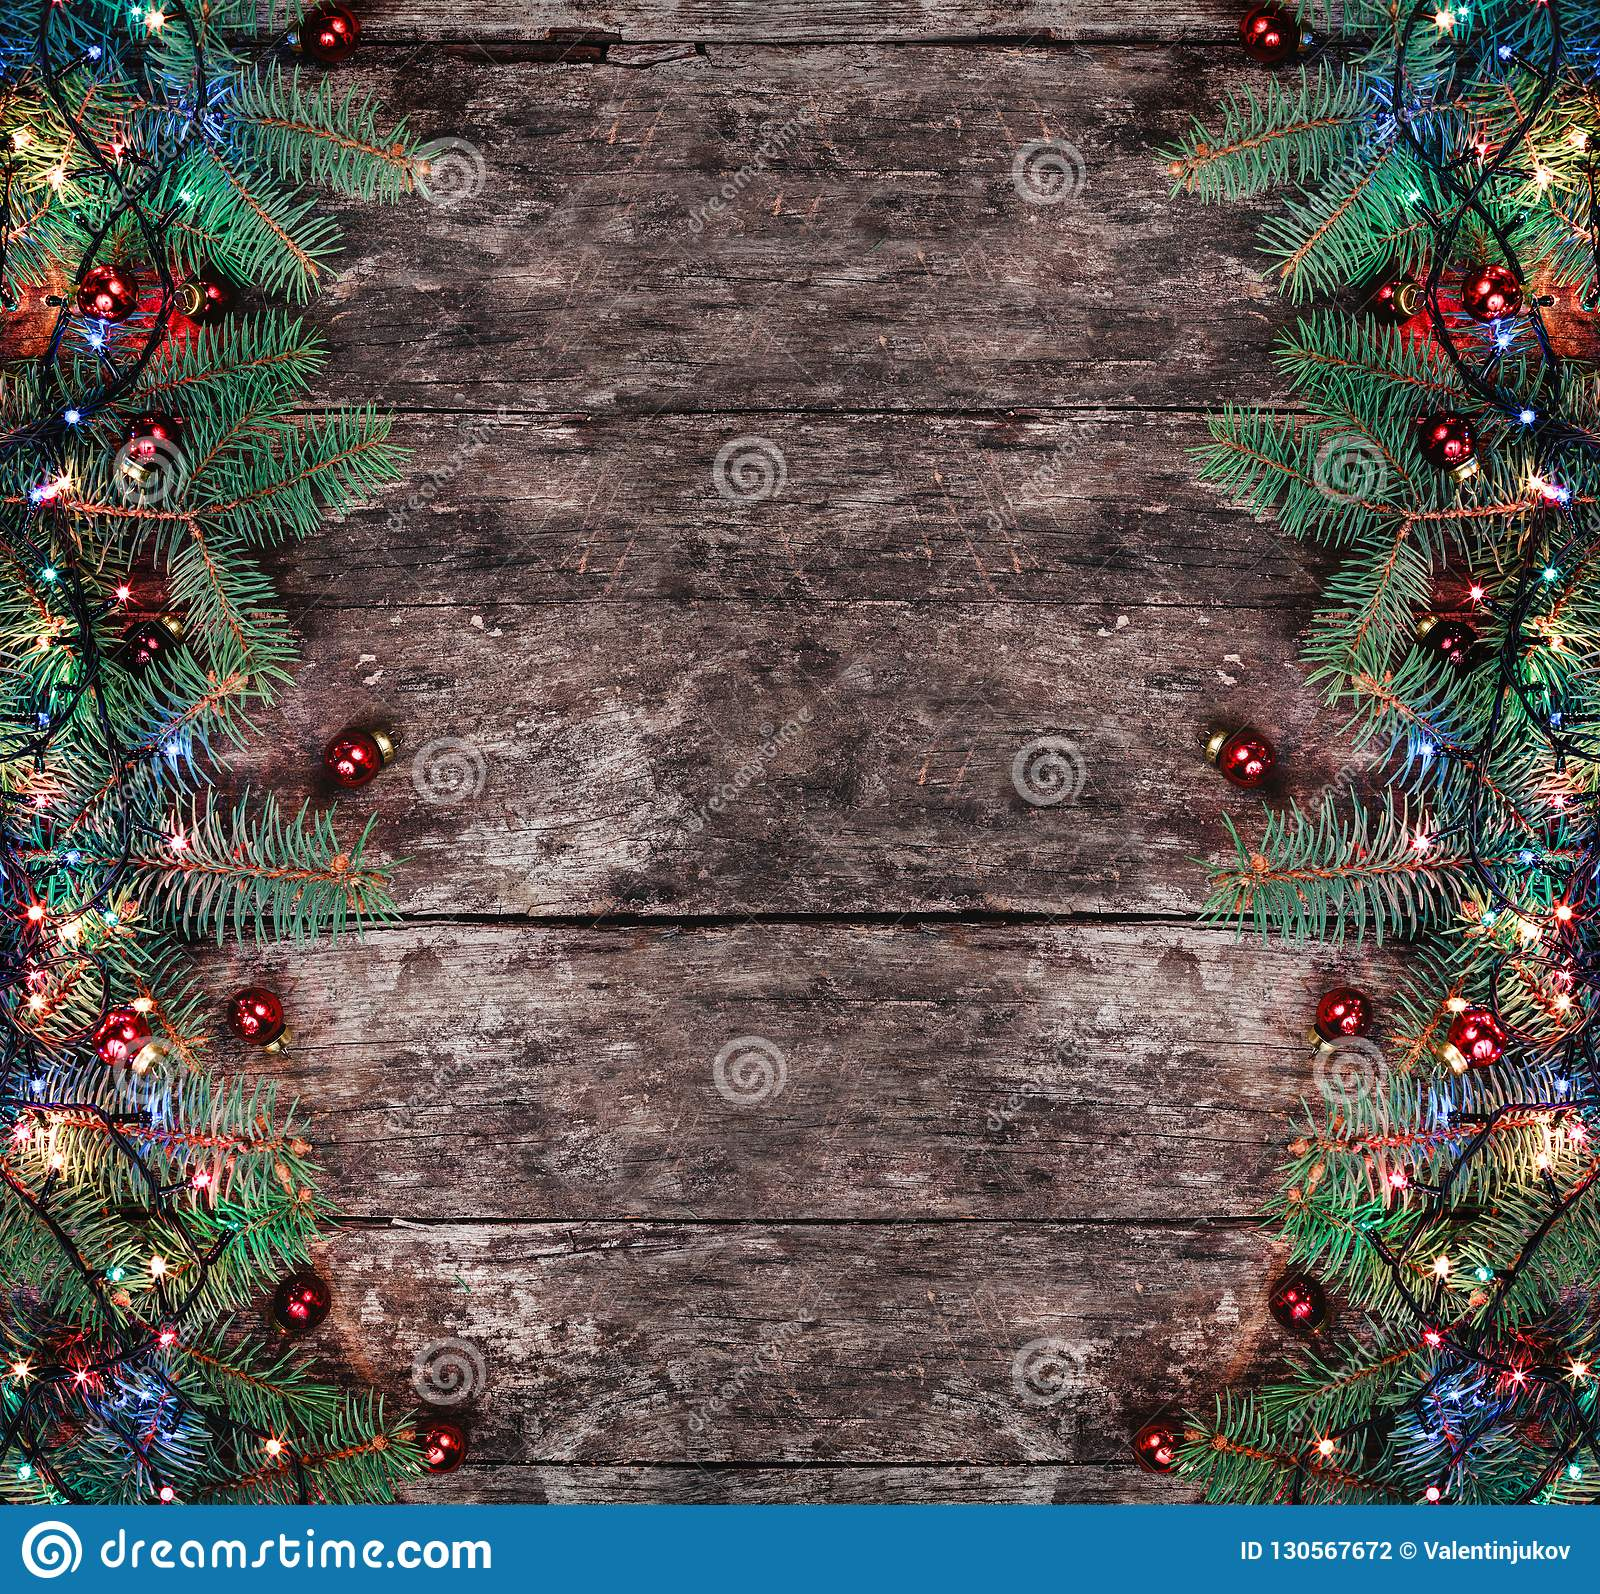 Christmas Fir branches with lights and red decorations on wooden background. Xmas and Happy New Year composition